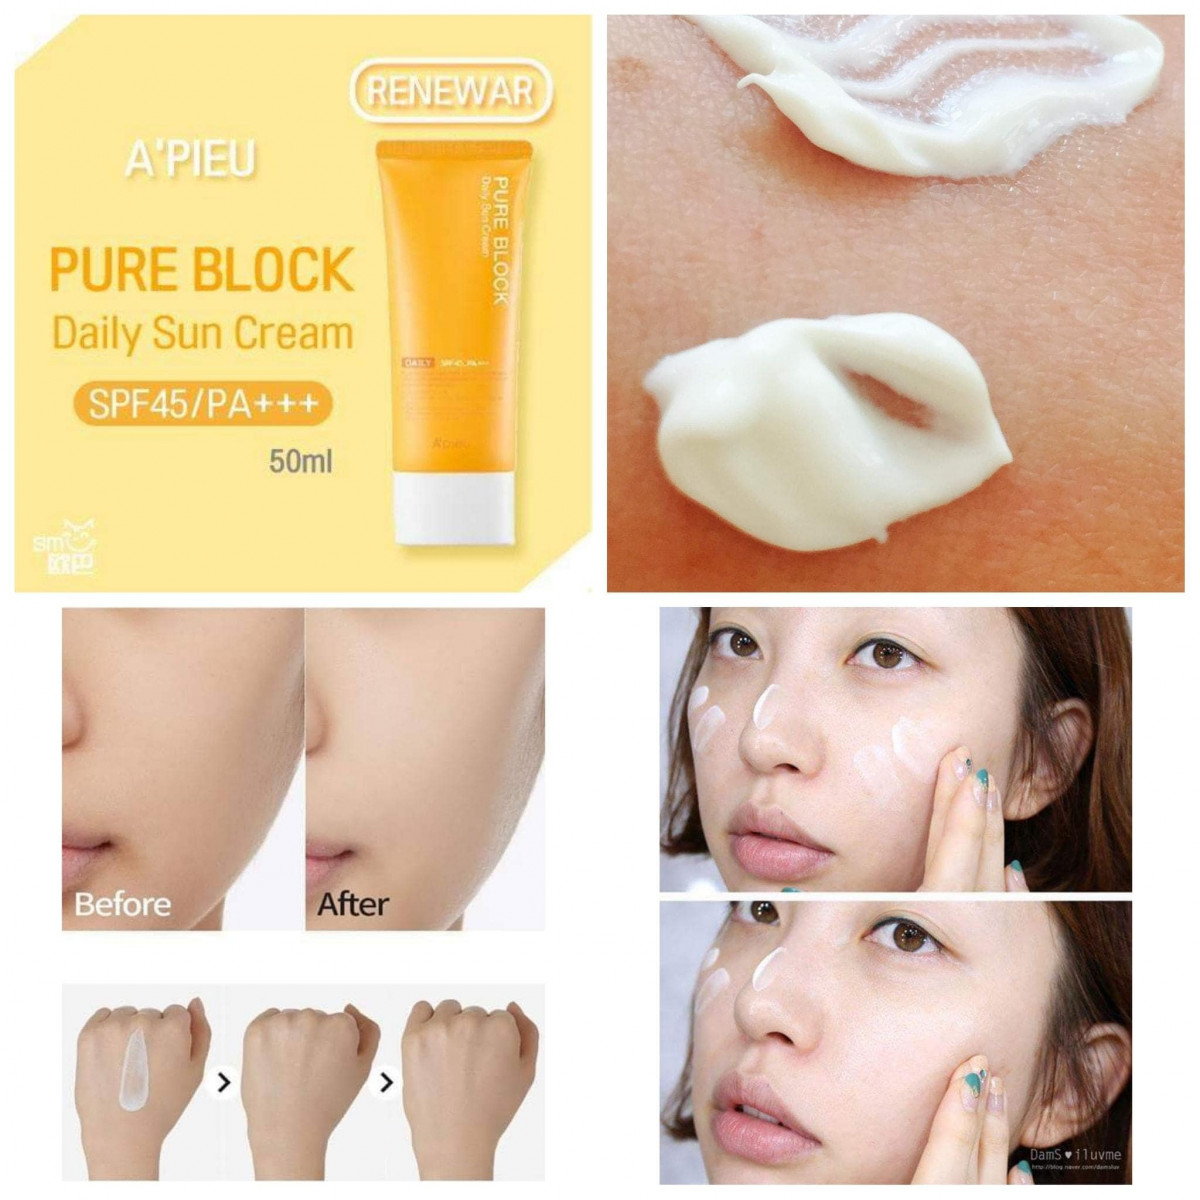 Pure Block Daily Sun Cream SPF45 PA+++[A'PIEU]